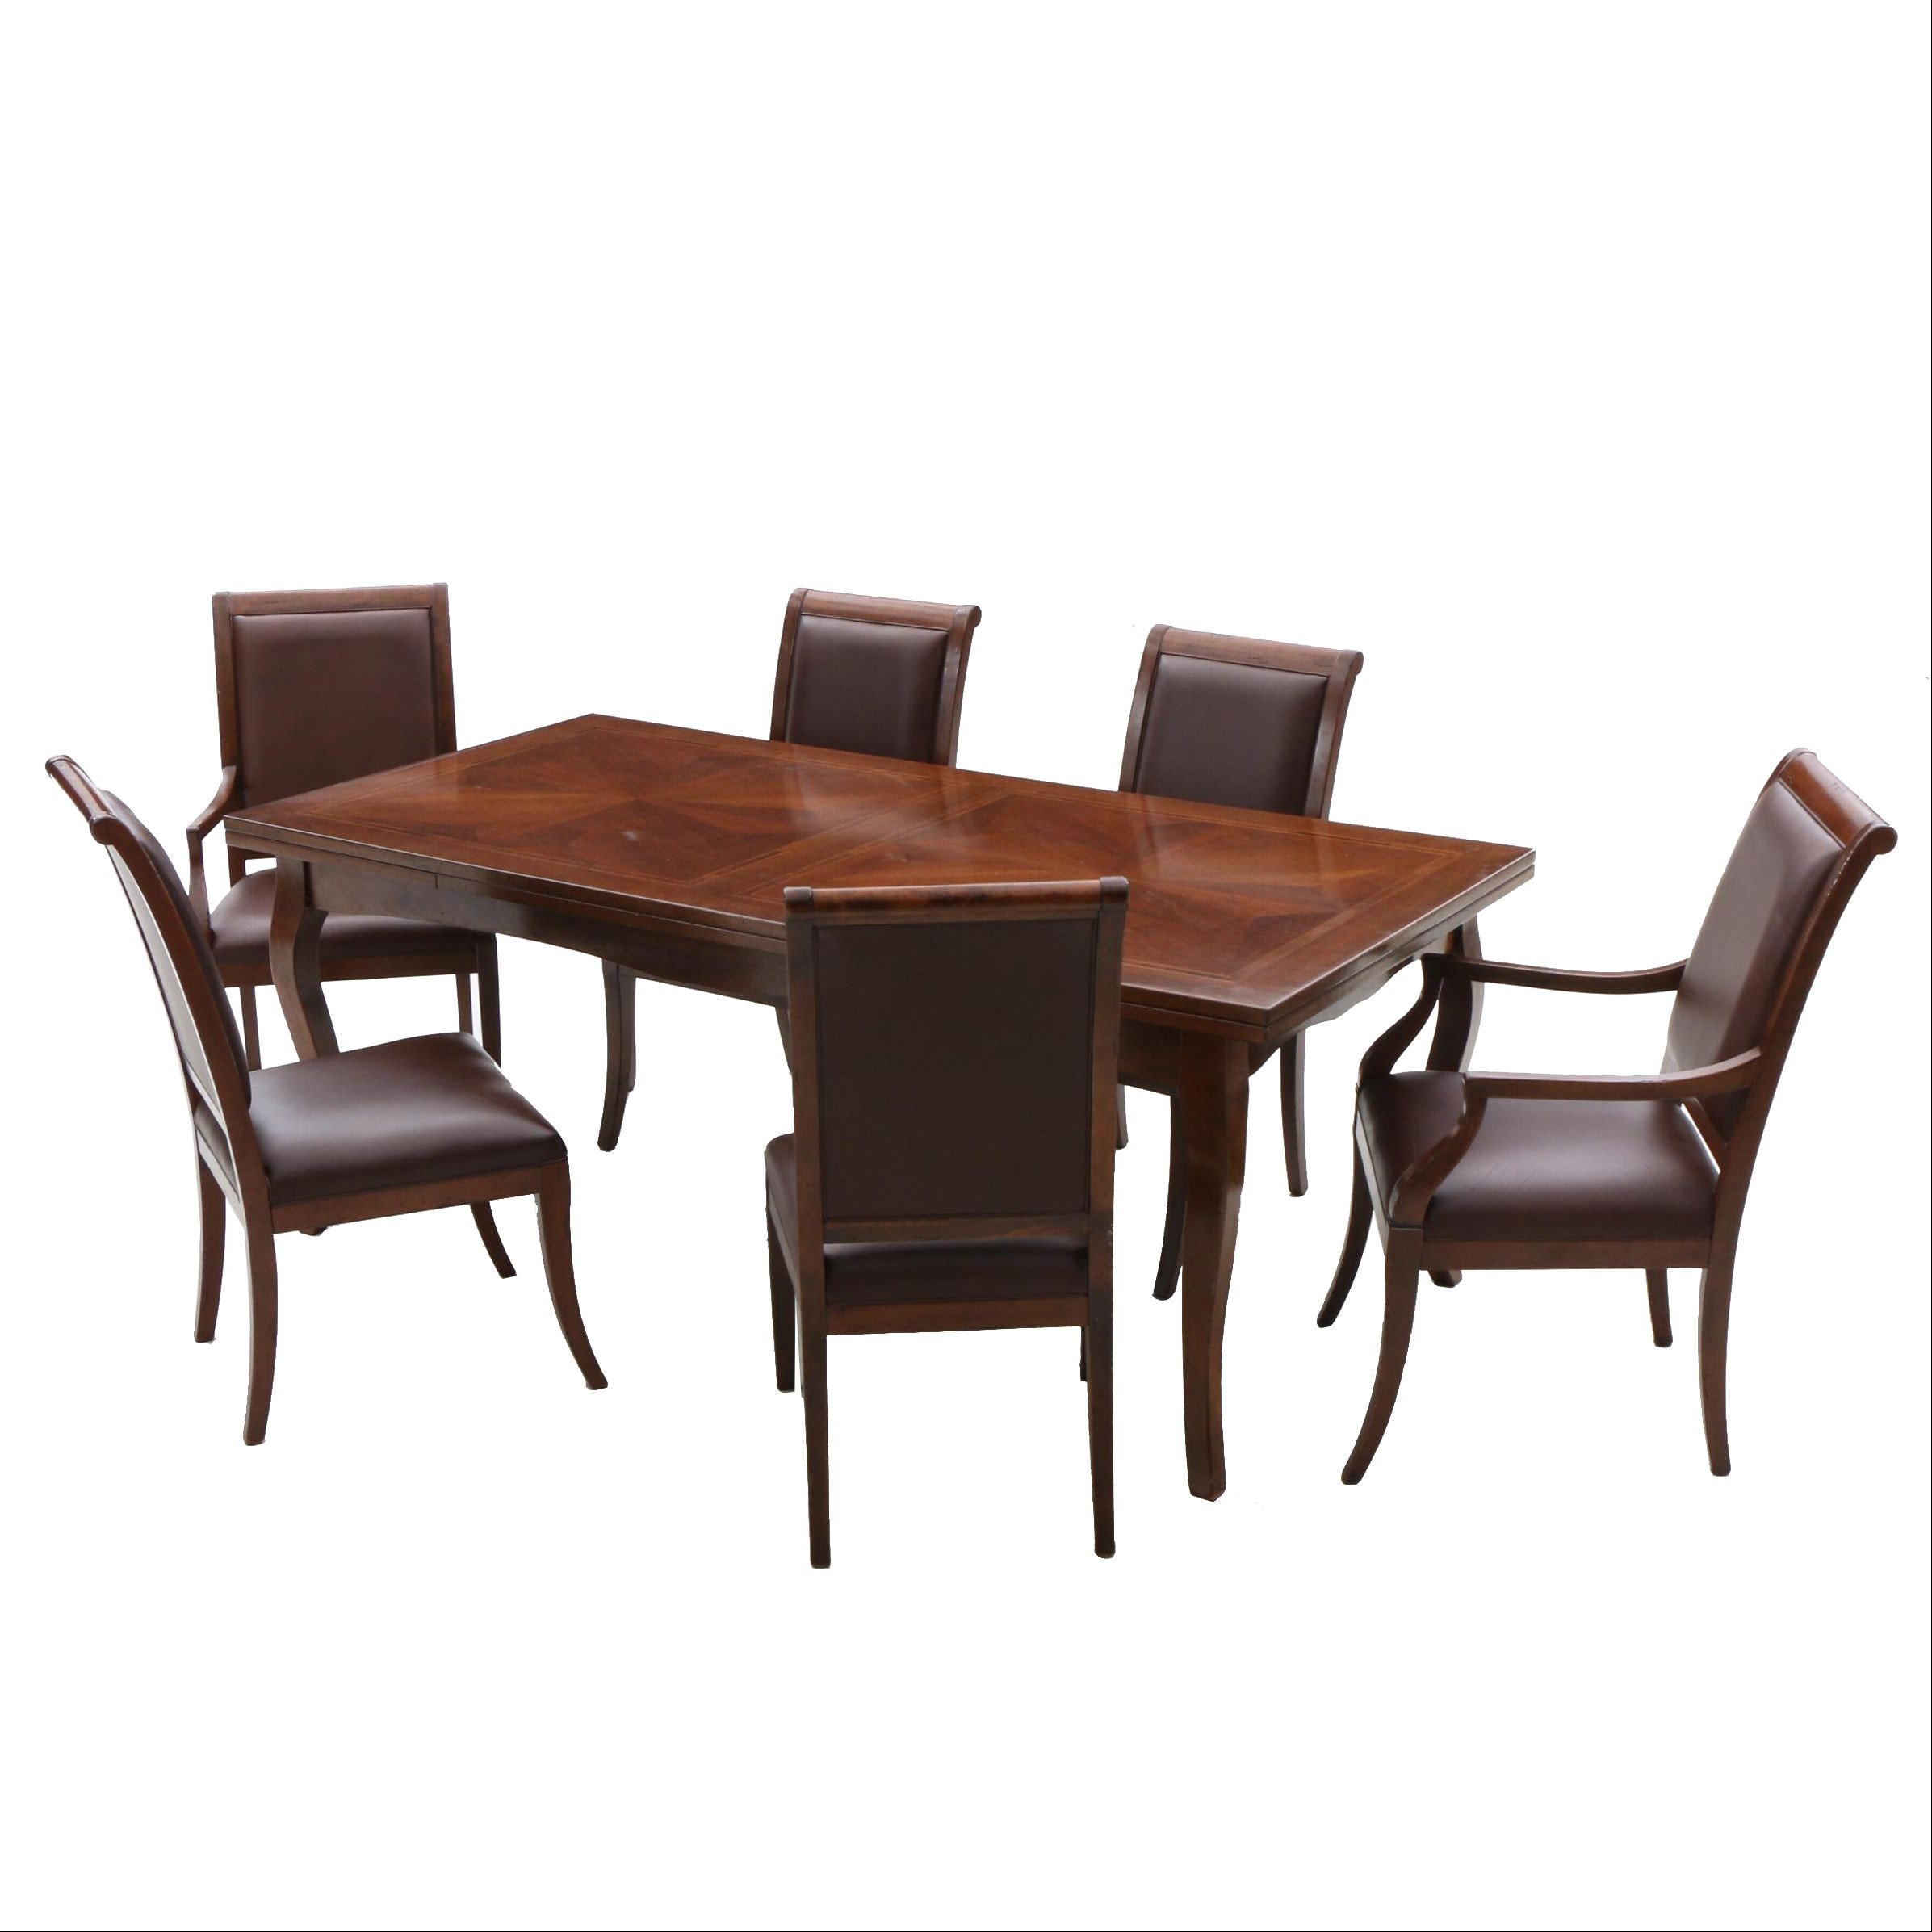 Arhaus Furniture Drawl-Leaf Table and Leather Upholstered Chairs in Walnut